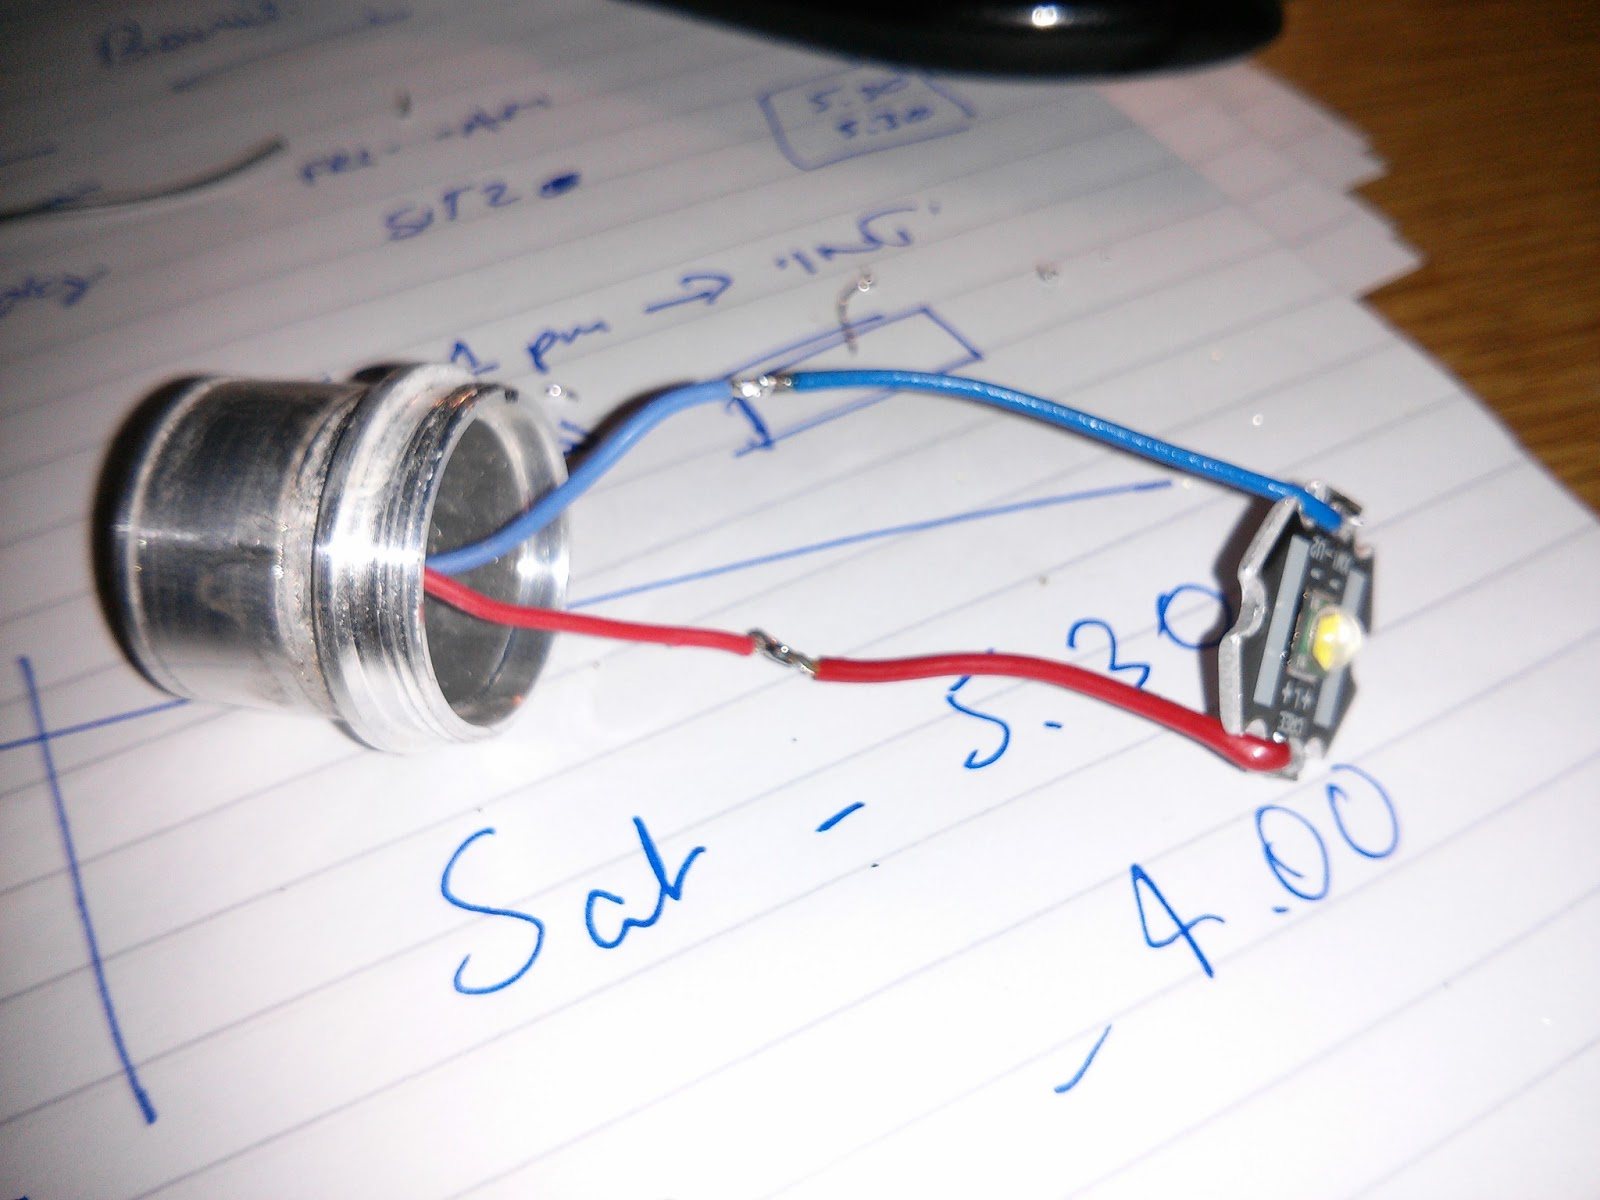 Johnohuks Ramblings Diy Underwater Video Light For My Sony Action Cam A Circuit Diagram Of Torch I Unsoldered The Original Wires From Led Pcb Found Some New Cable Same Colour Multi Core And Soldered Them Up Like Above